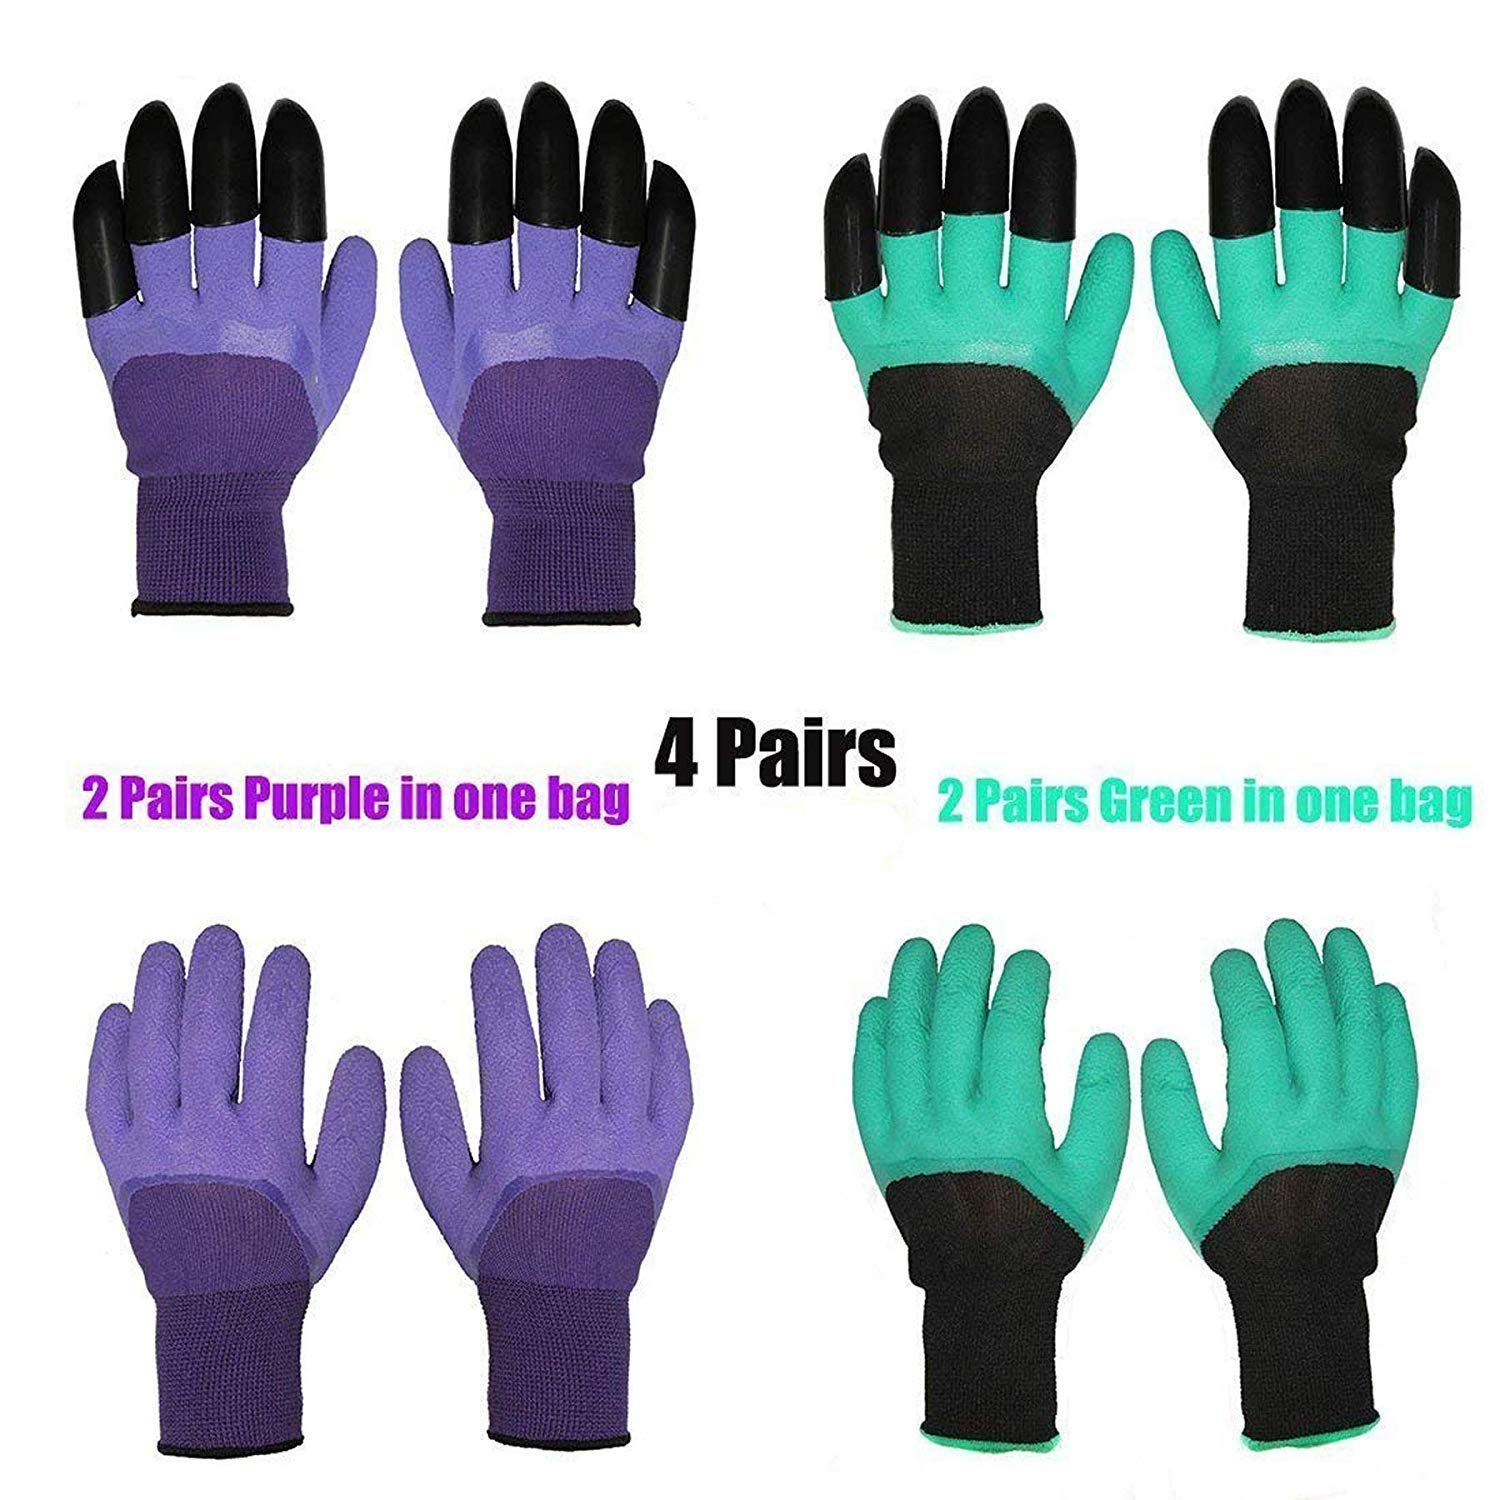 4 PAIRS BROWN AND GREEN 4 Pairs Garden Gloves With Fingertips Claws,Best Gift For Gardener,2 Pairs Working Genie Gloves With Double Claws,2 Pairs without Claws,For Digging and Planting,Breathable.